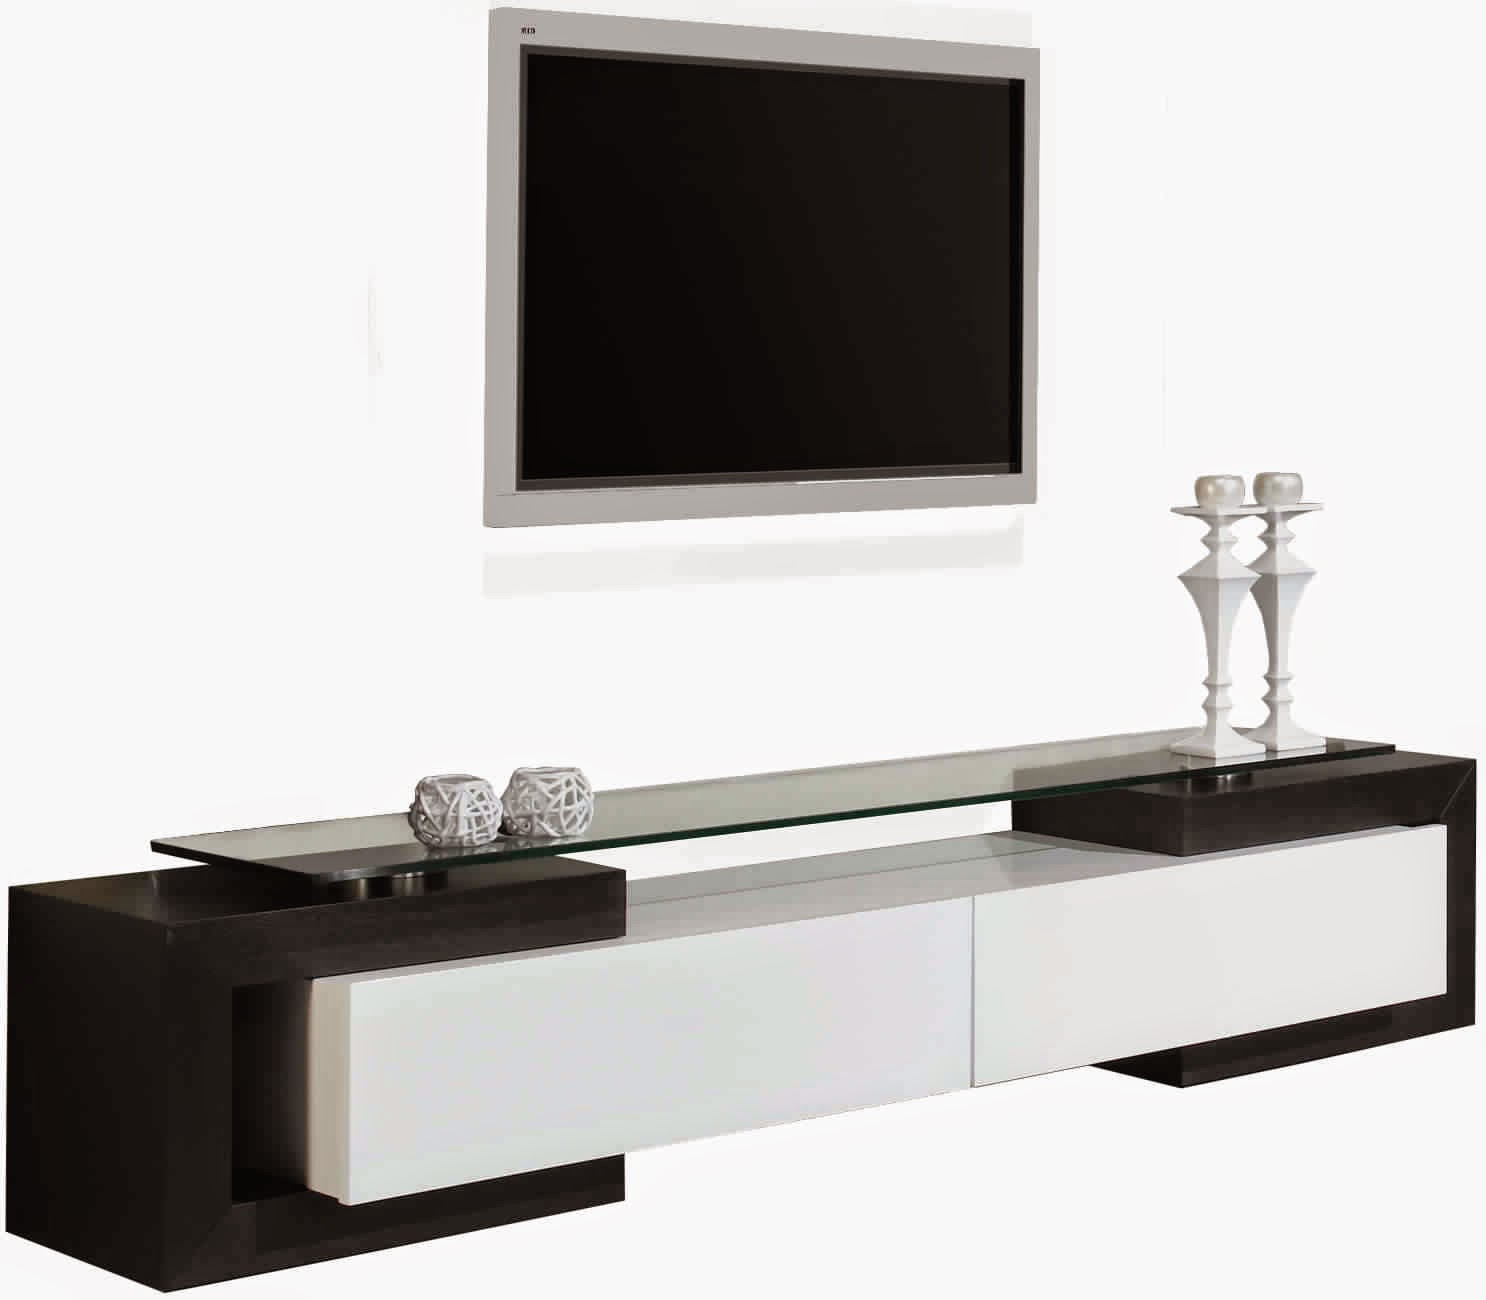 meuble tv noir et blanc laqu 3 id es de d coration. Black Bedroom Furniture Sets. Home Design Ideas